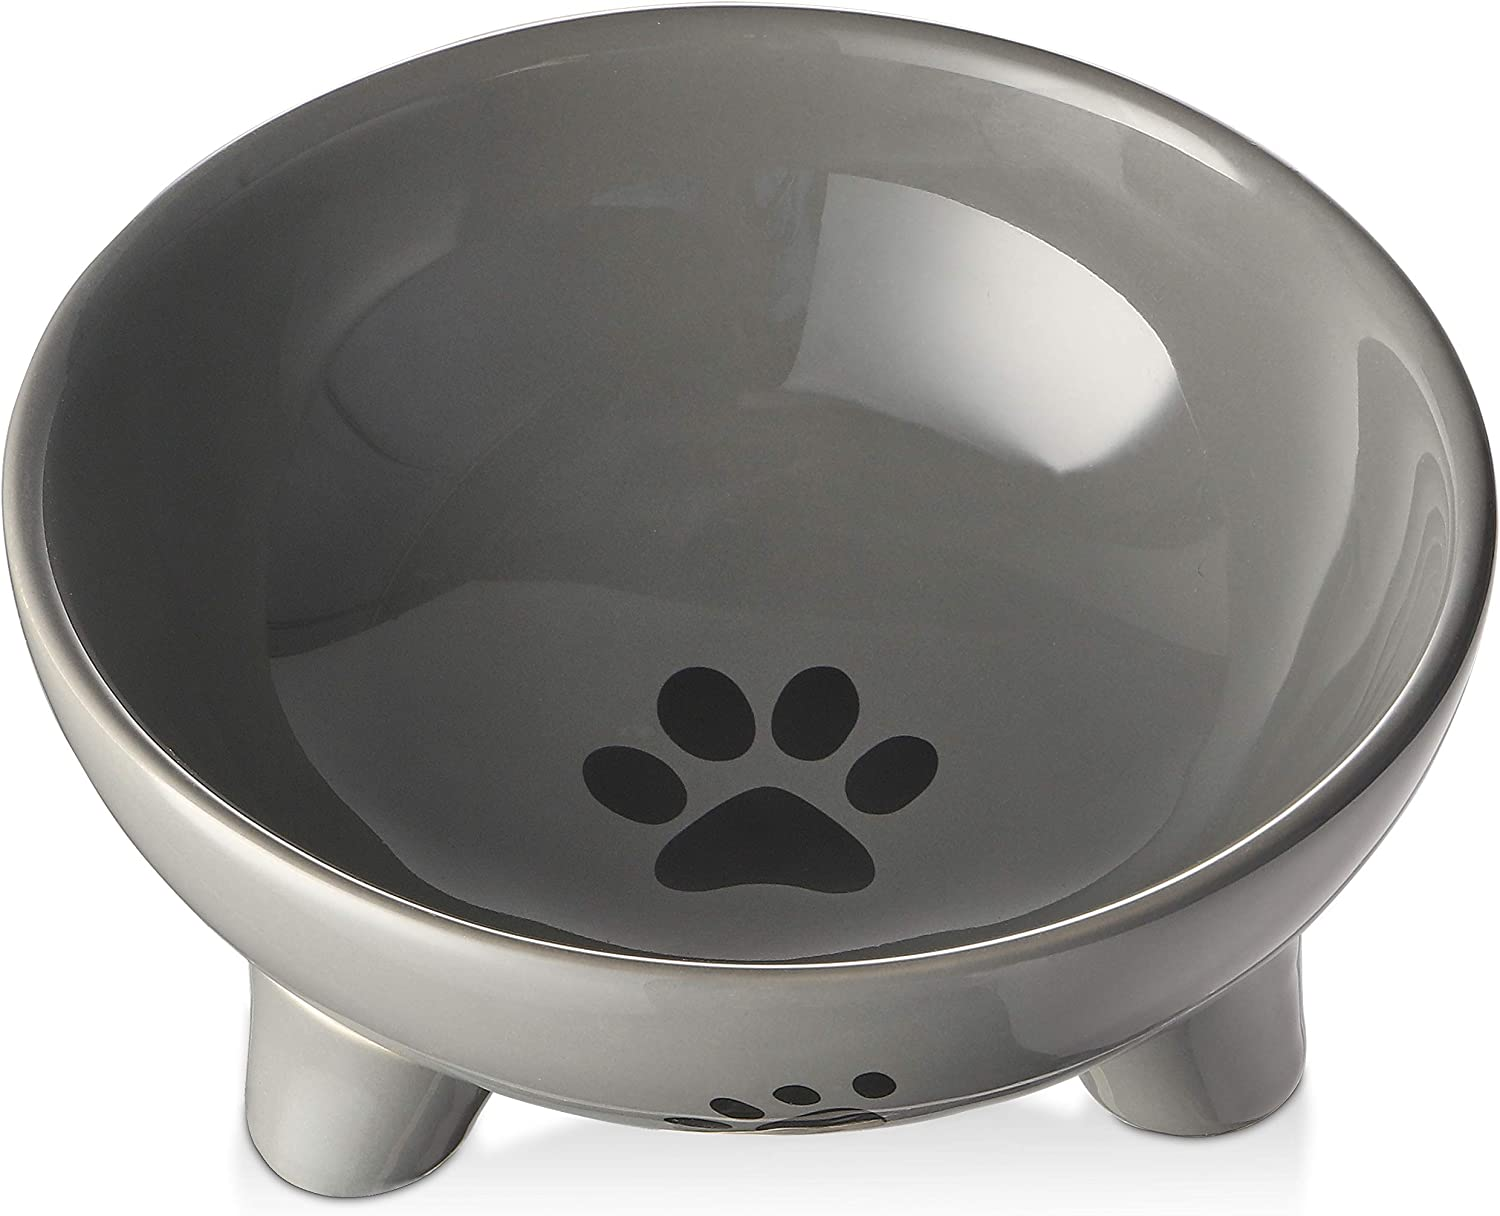 Y YHY Elevated Cat Bowls Dog Bowl,27 Ounce Ceramic Raised Cat Food Bowl,Pet Bowls for Cat/Small Dog,Anti Vomiting,Protect Spine,Stress Free,Microwavable and Dishwasher Safe,Grey